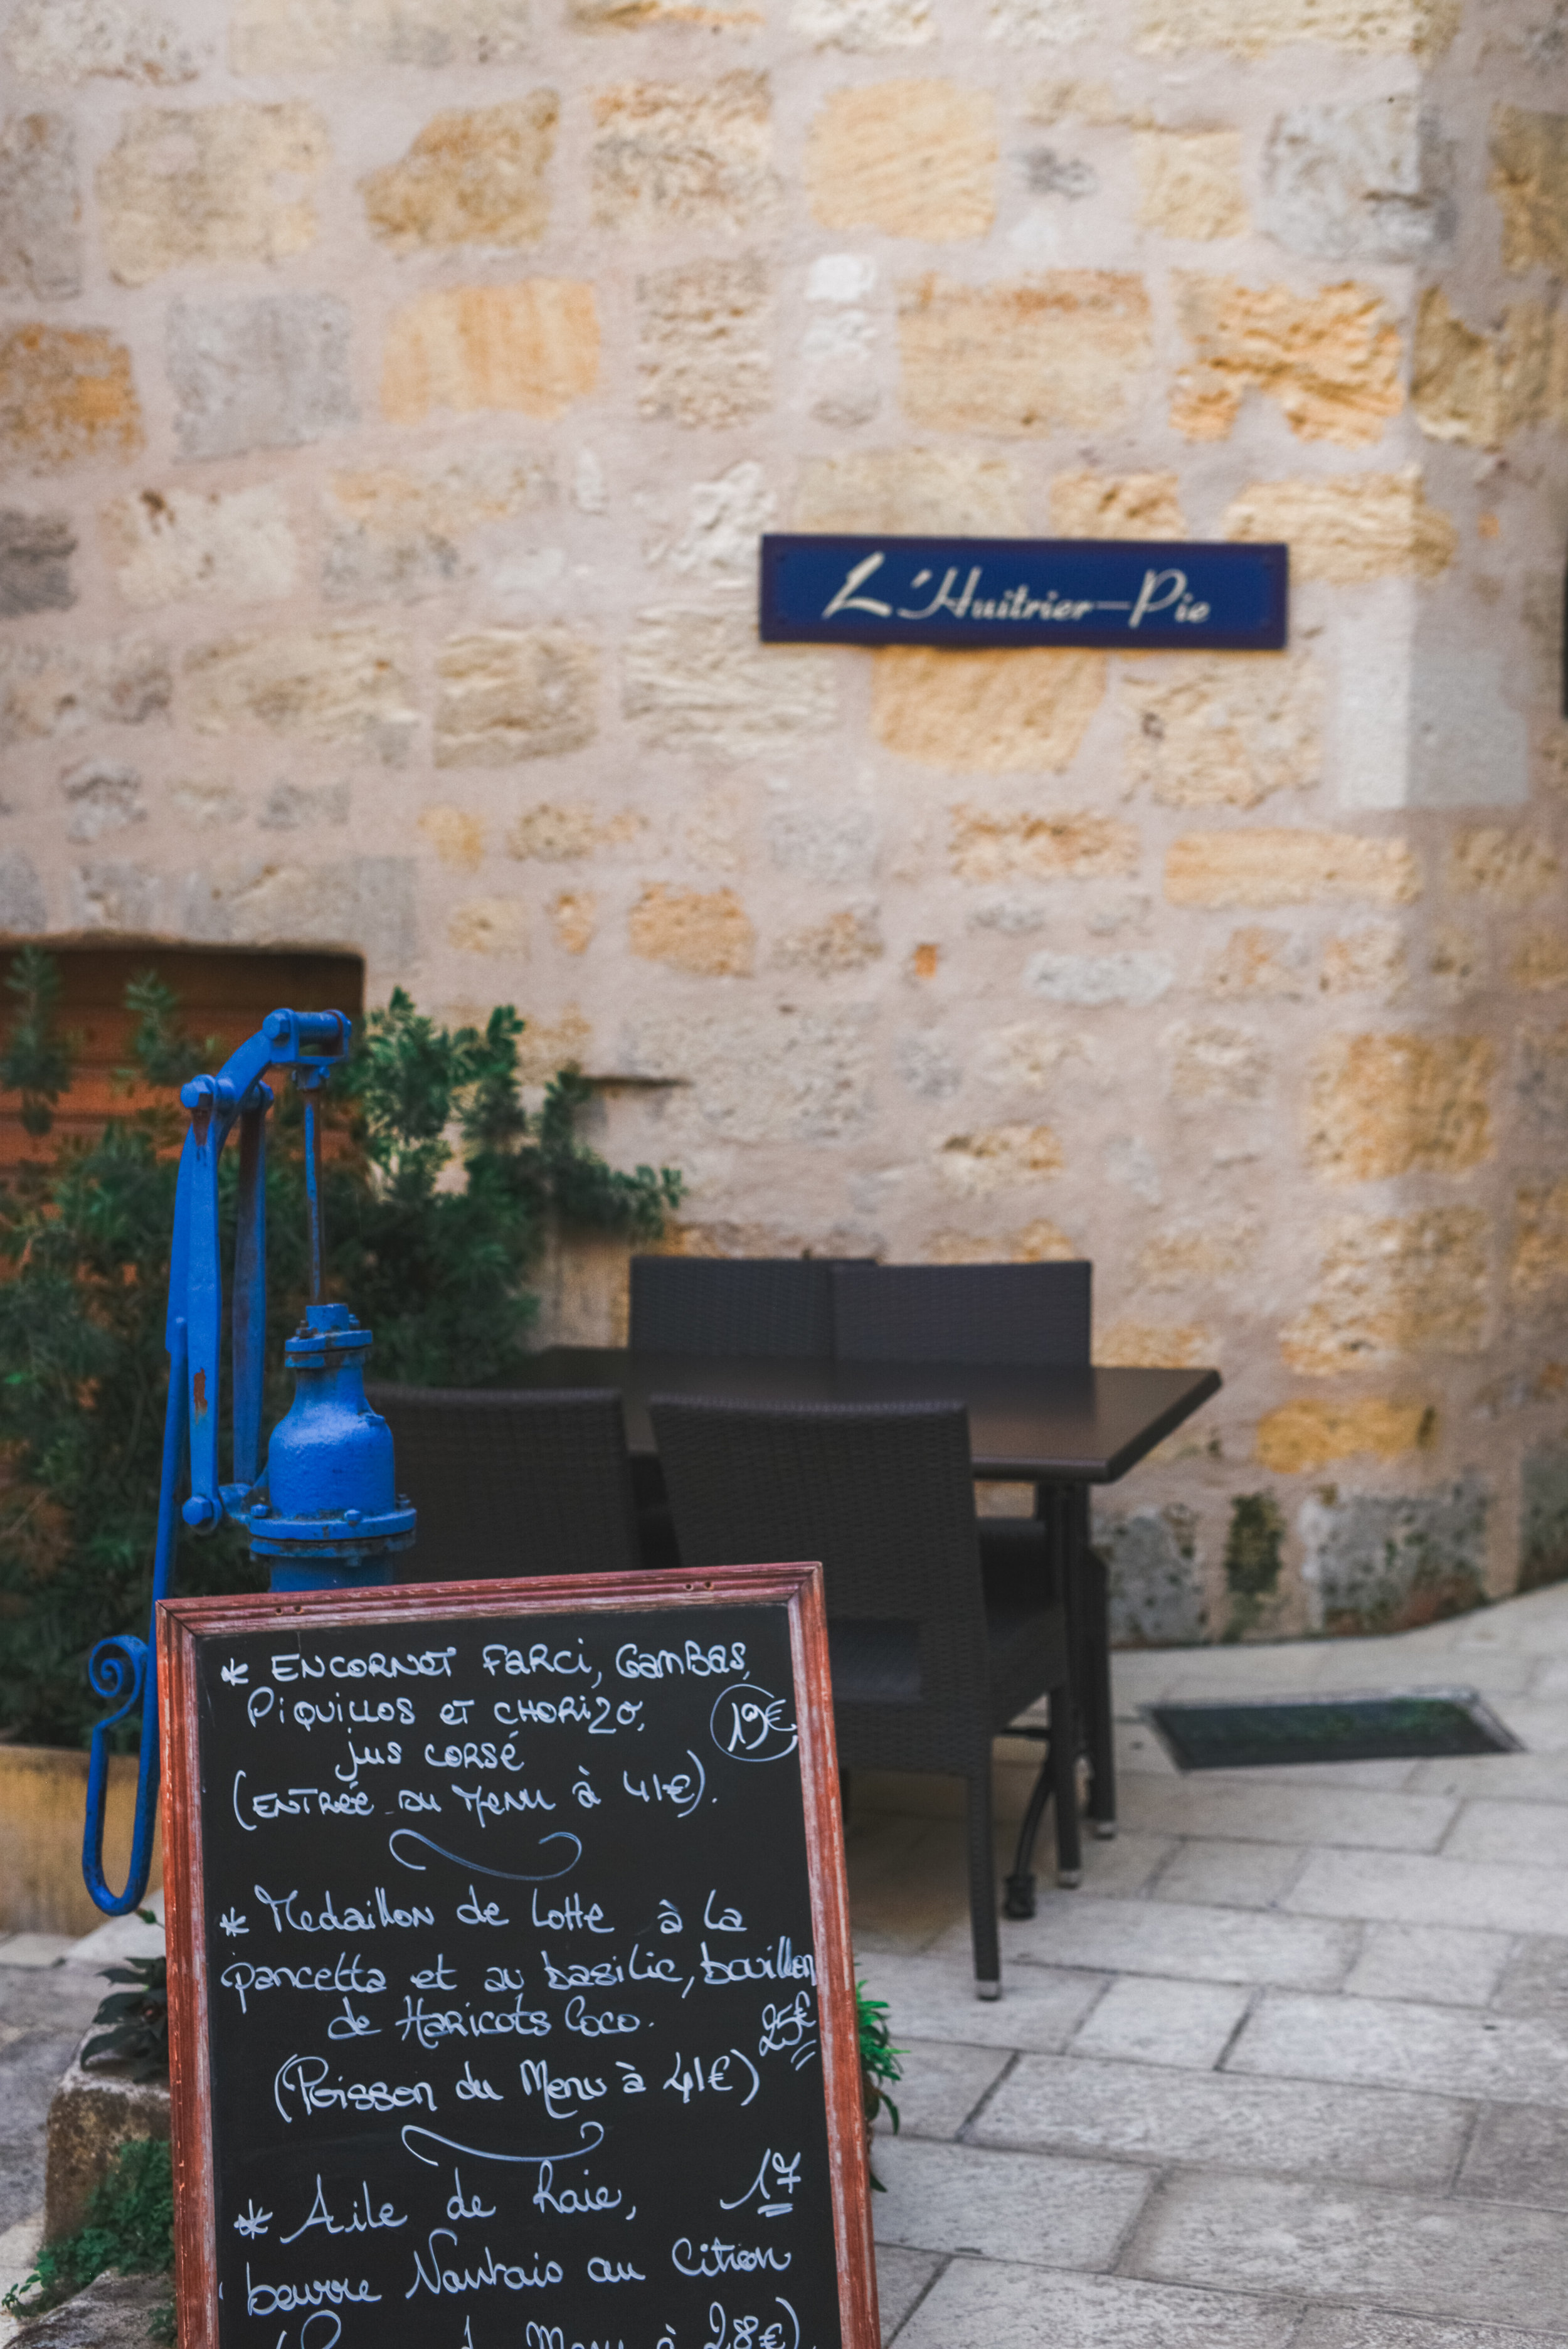 L'Huitrier Pie - A Michelin-recognized restaurant in the heart of St Emilion